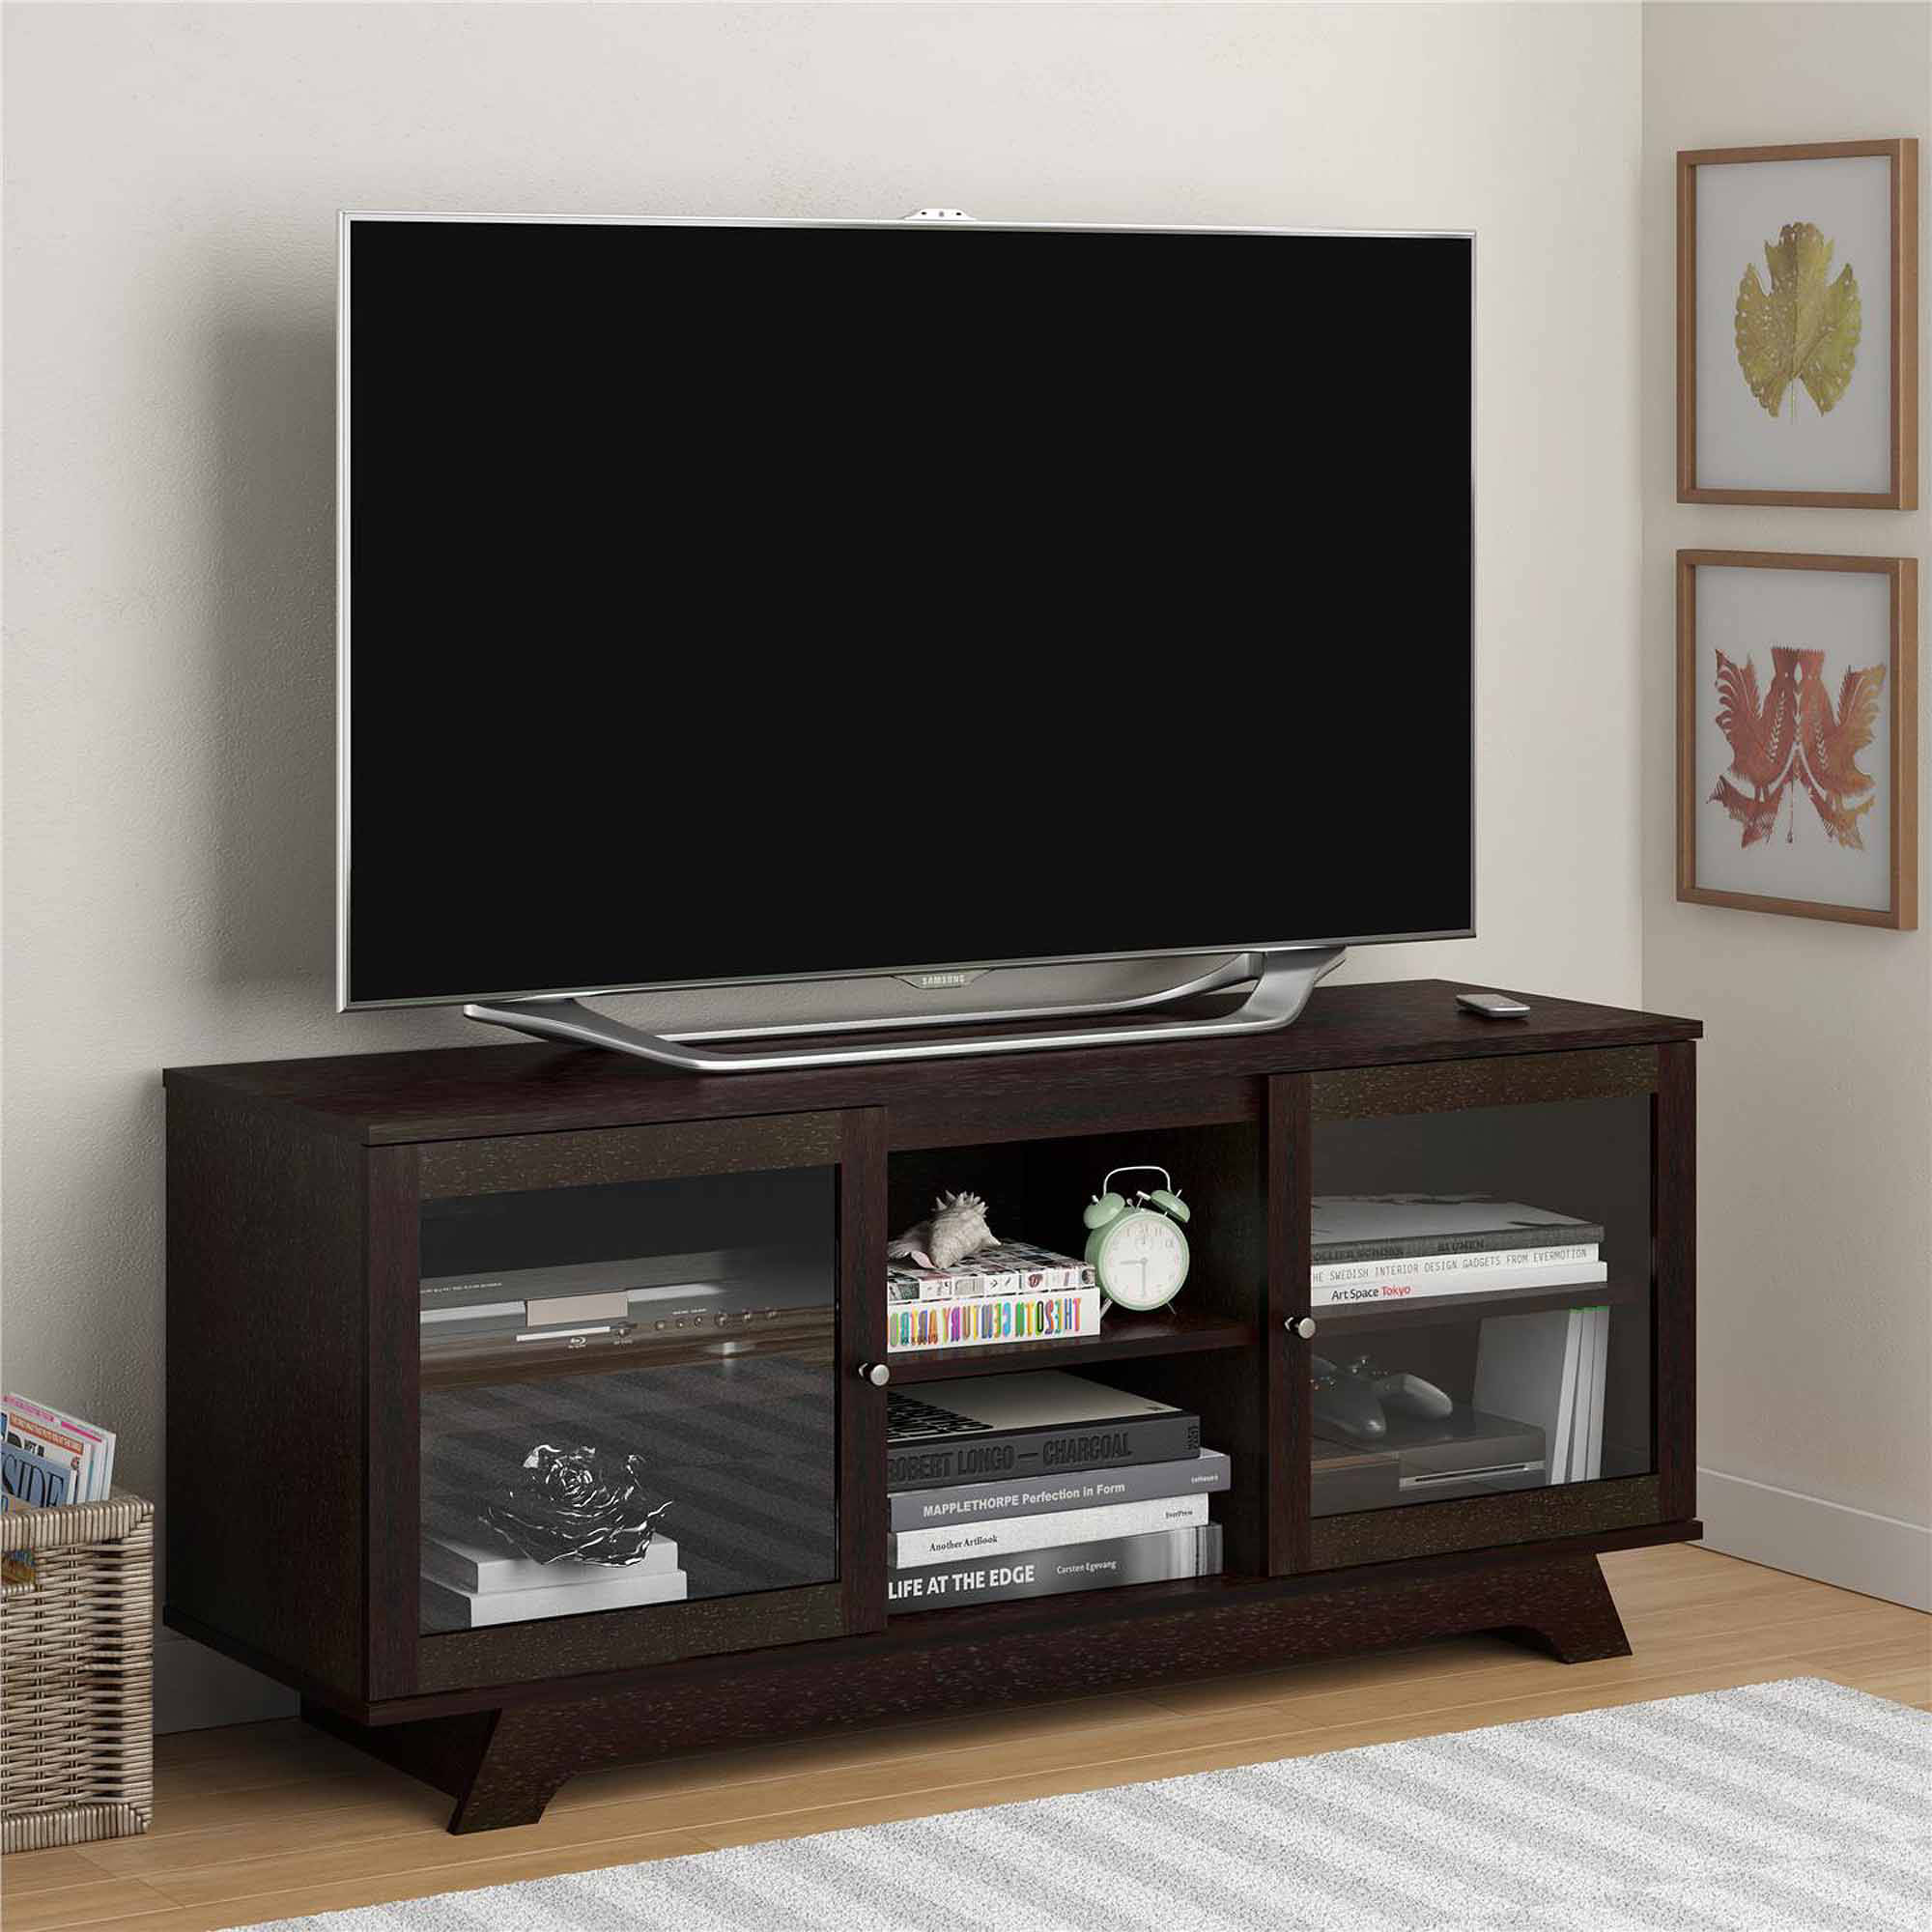 Tv Units Sauder Deco Panel Tv Stand For Tvs Up To 42